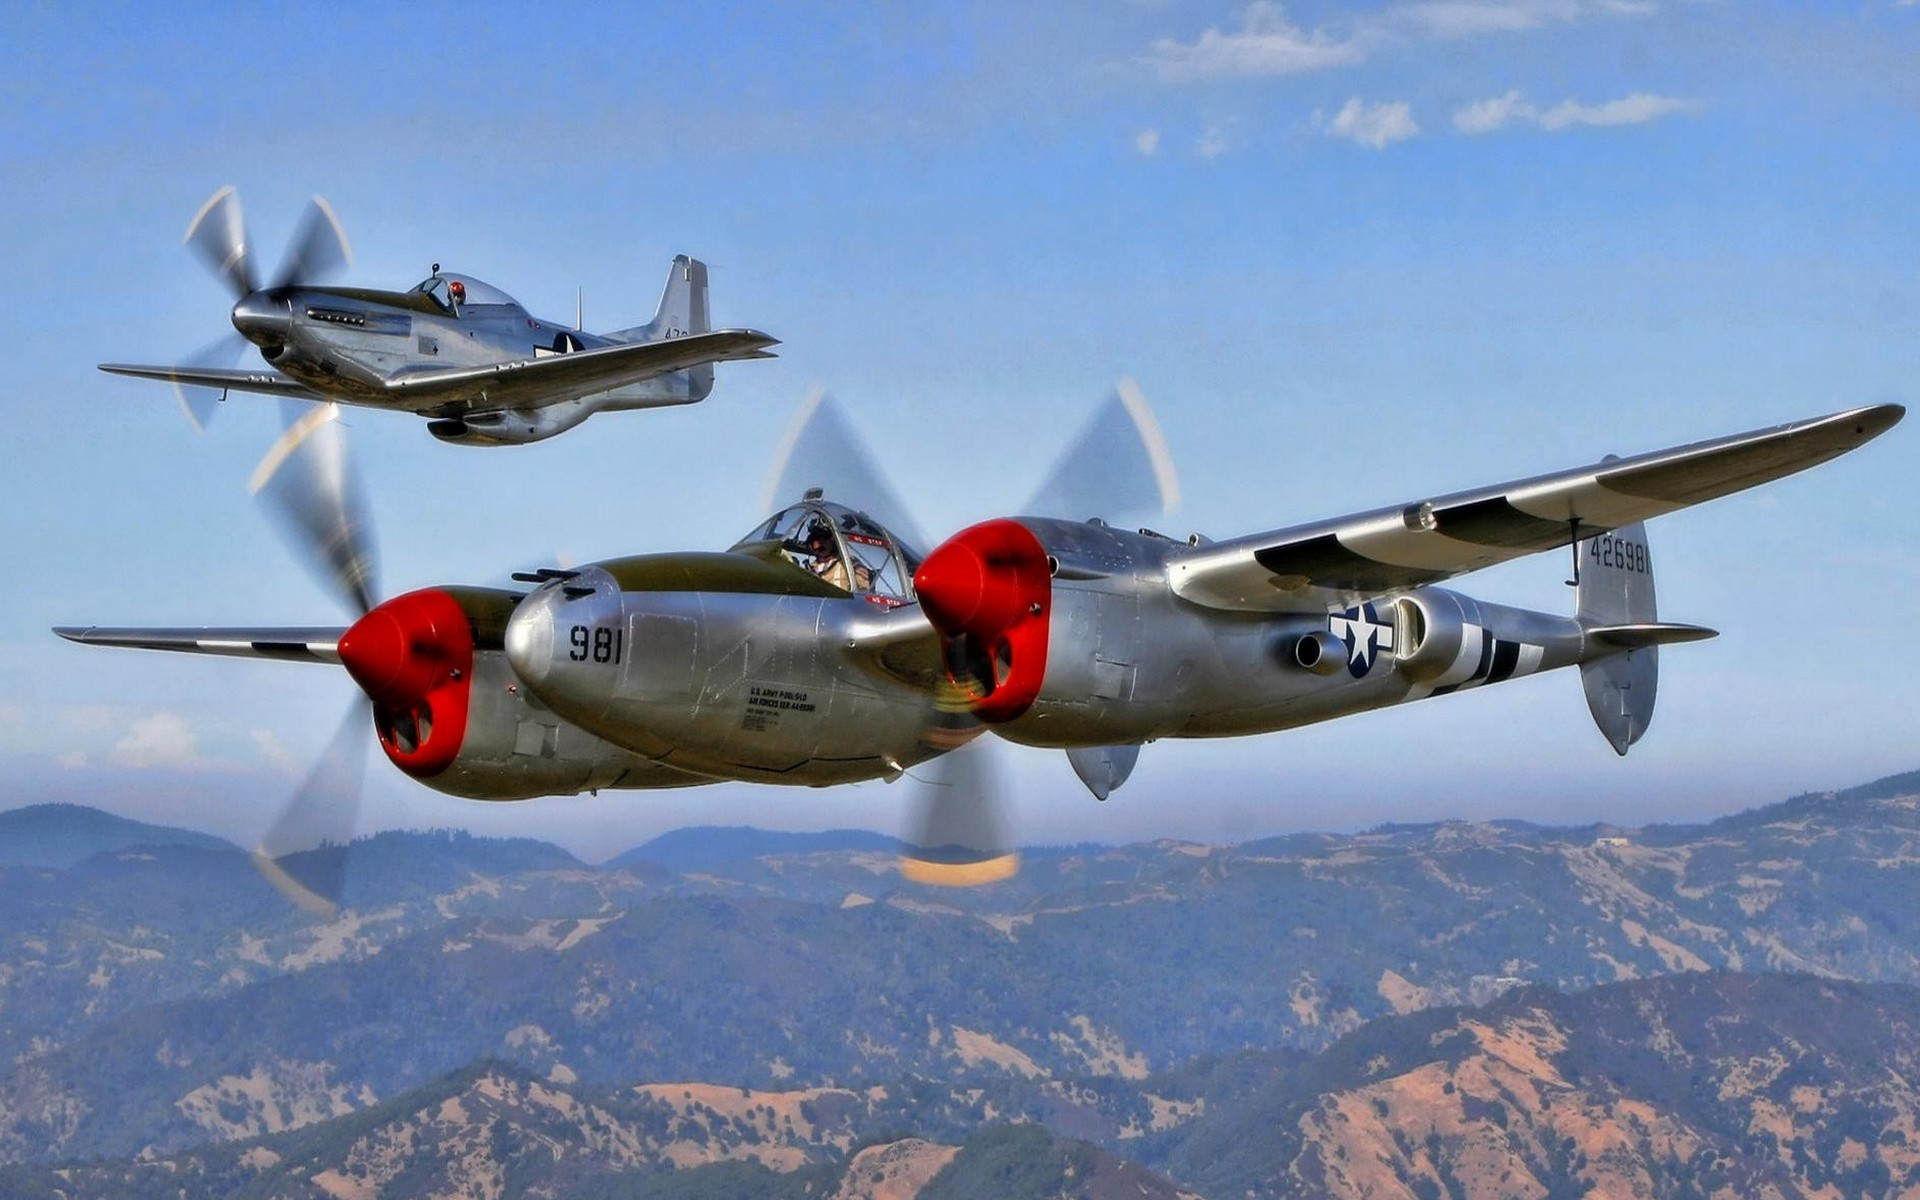 Iphone 5a Hd Wallpapers Lockheed P 38 Lightning Hd Wallpaper Background Image